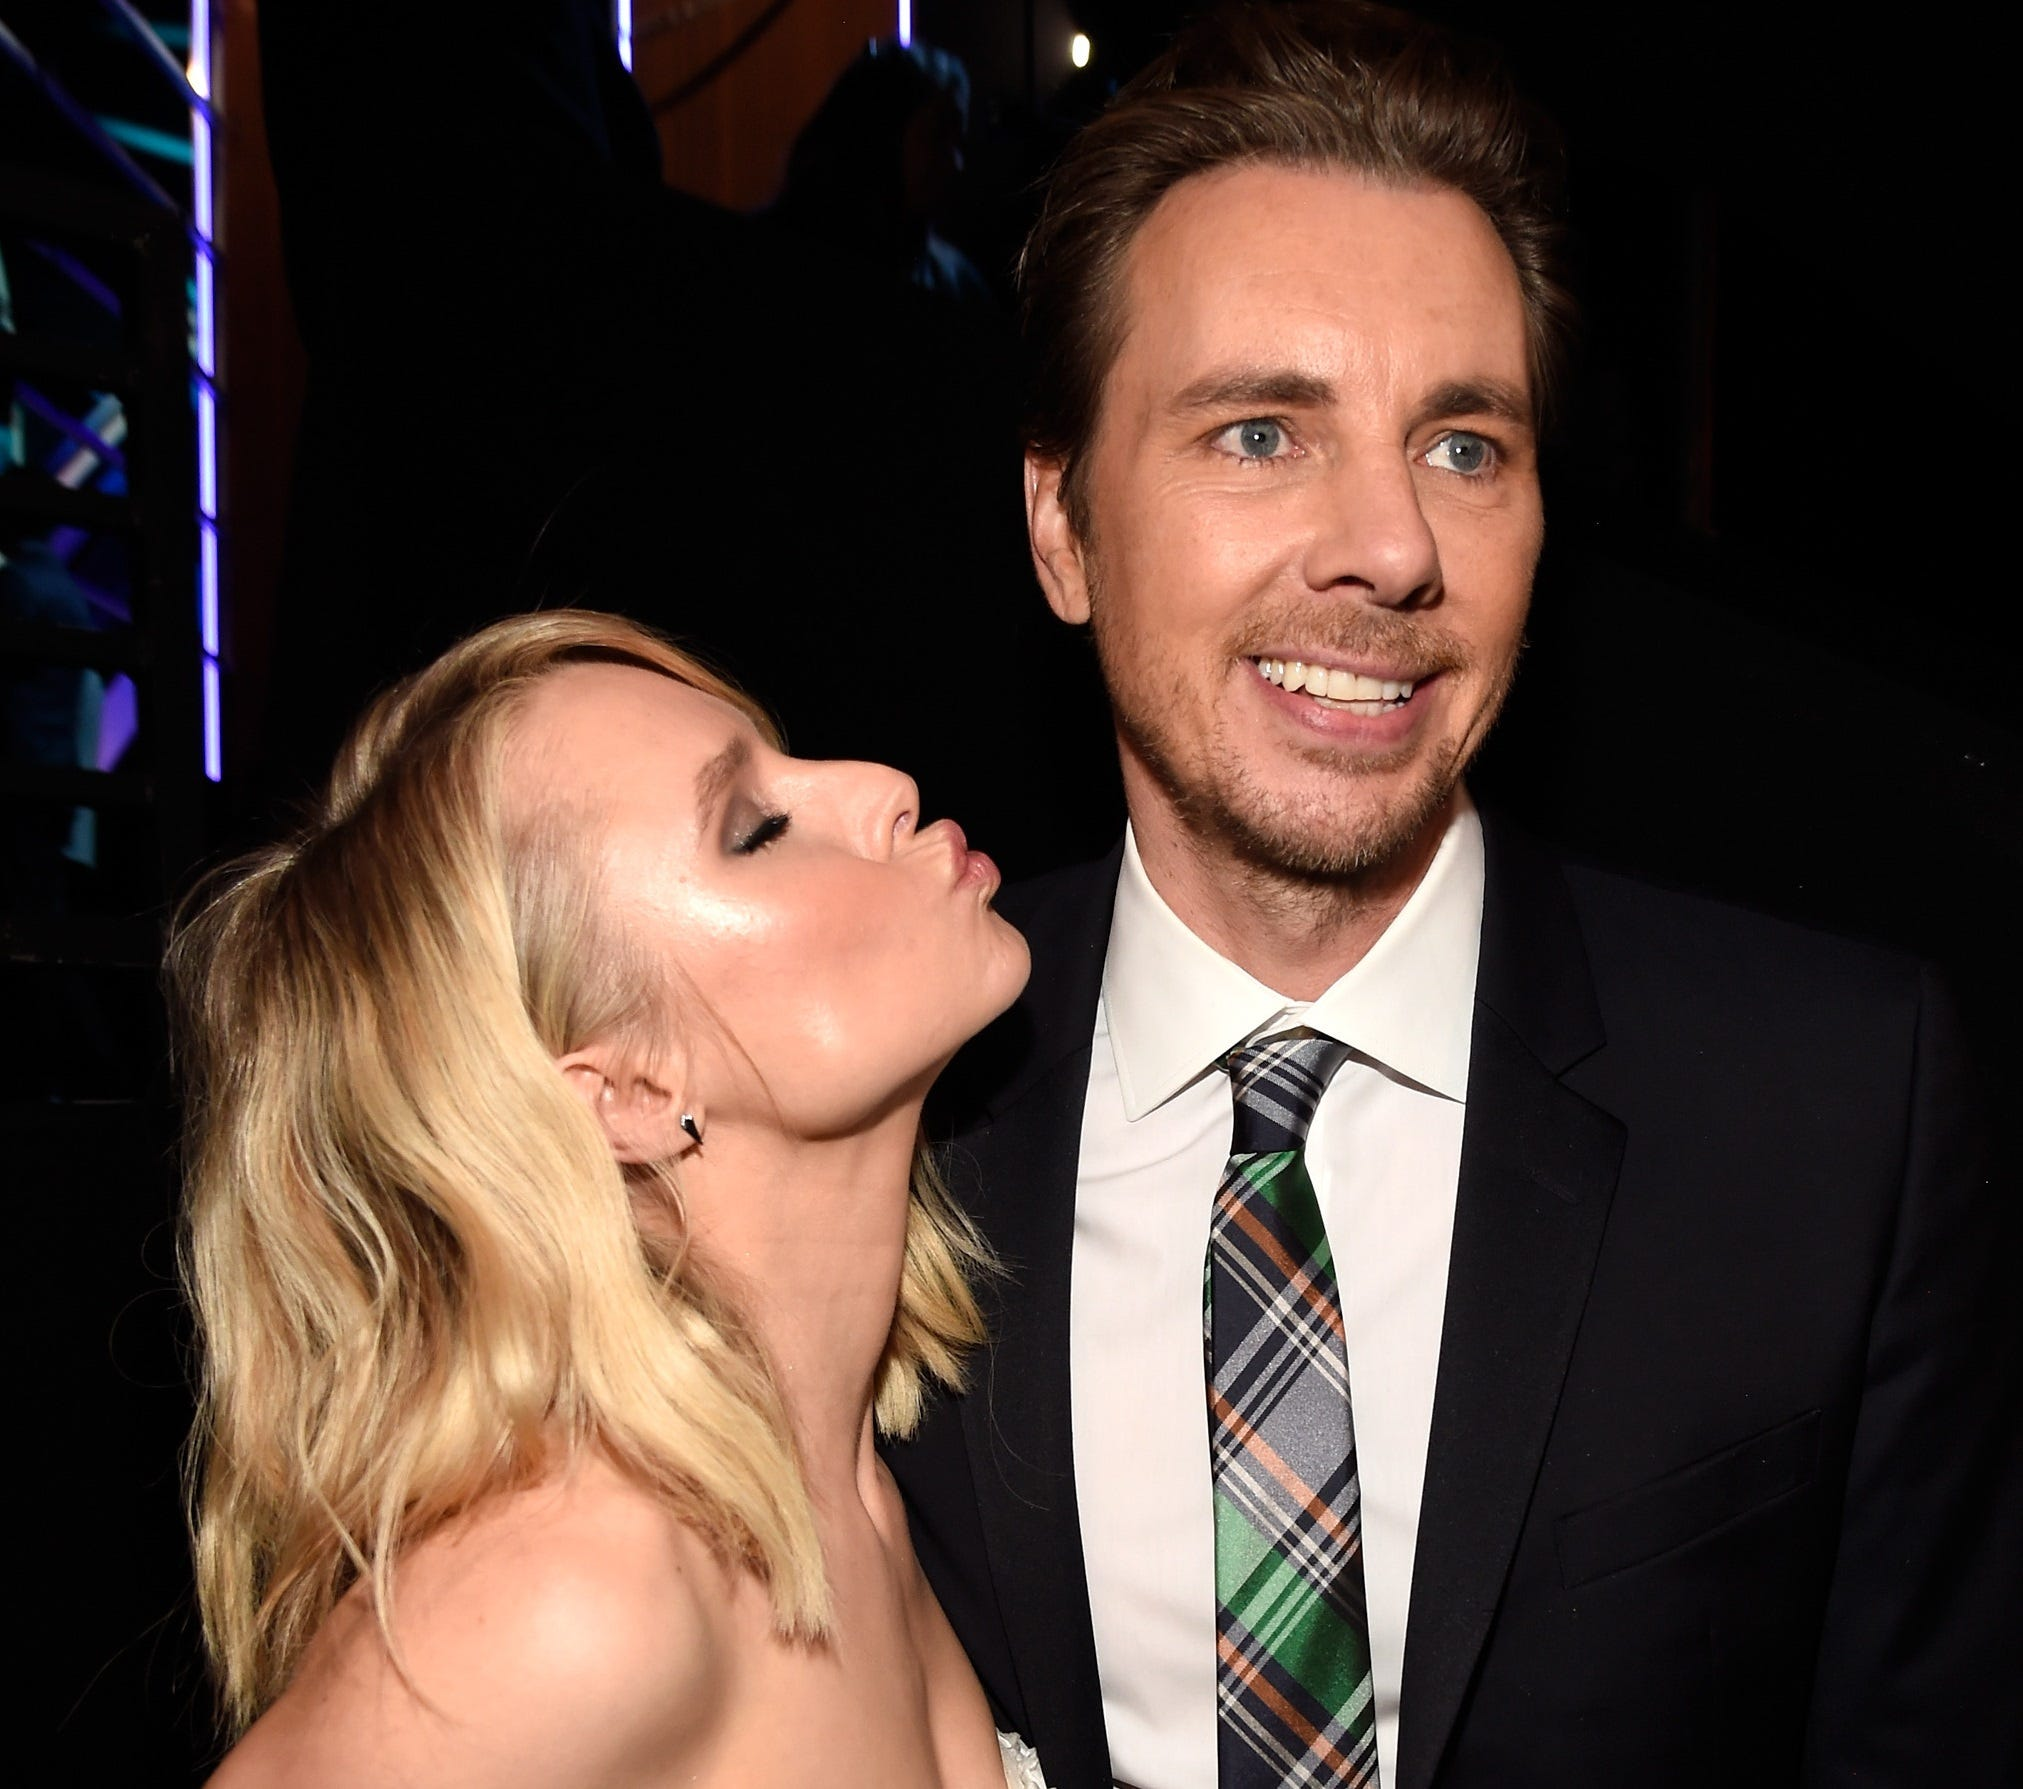 What has dax shepard been in